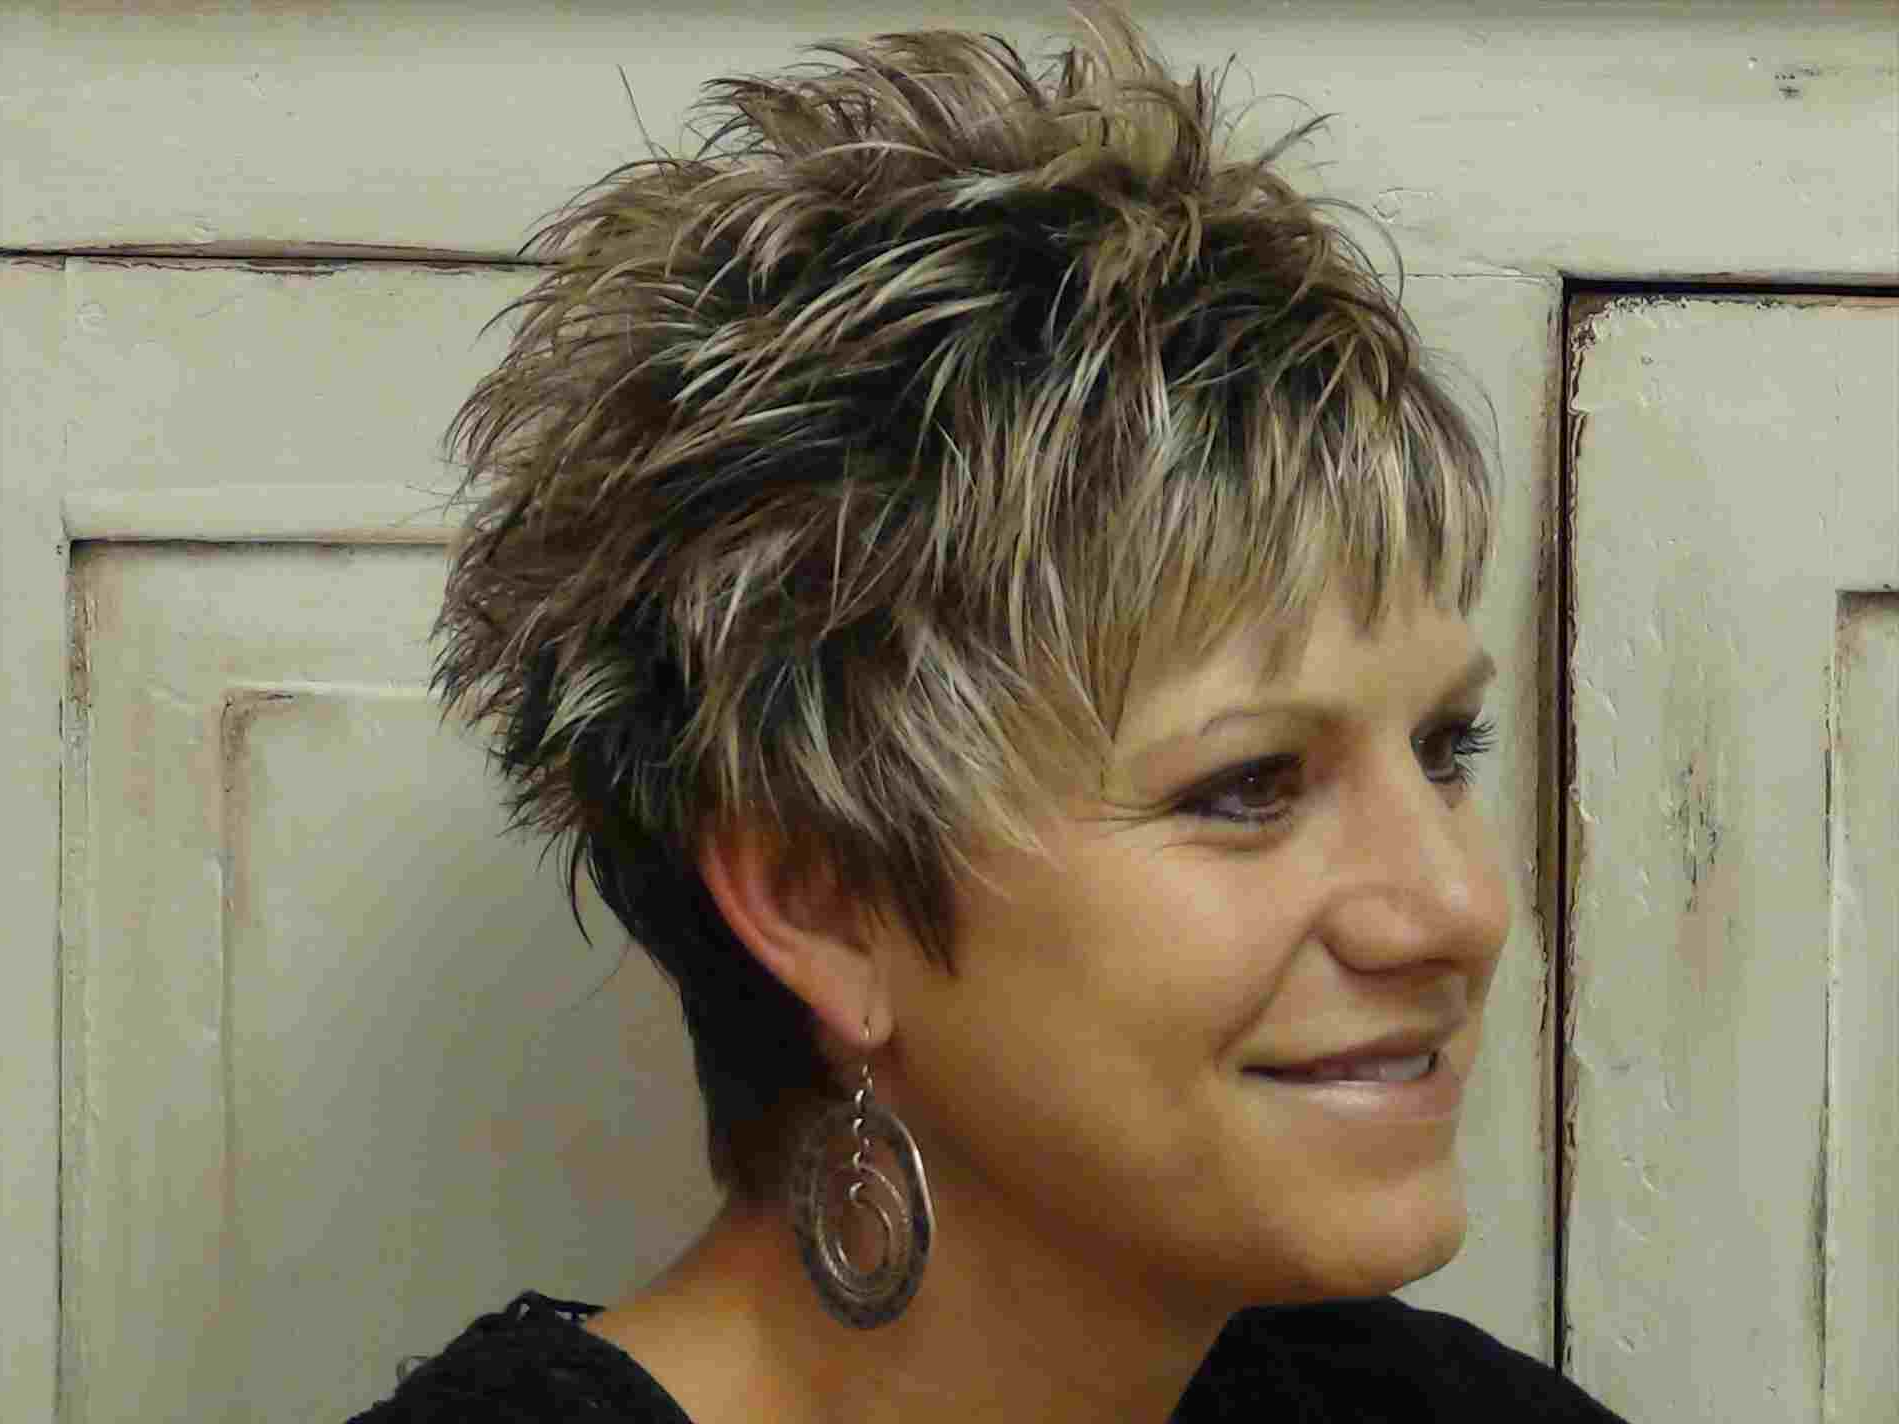 Short Ideas On Rhpinterestcom Haircuts Short Edgy Hairstyles For Regarding Messy Short Haircuts For Women (View 21 of 25)